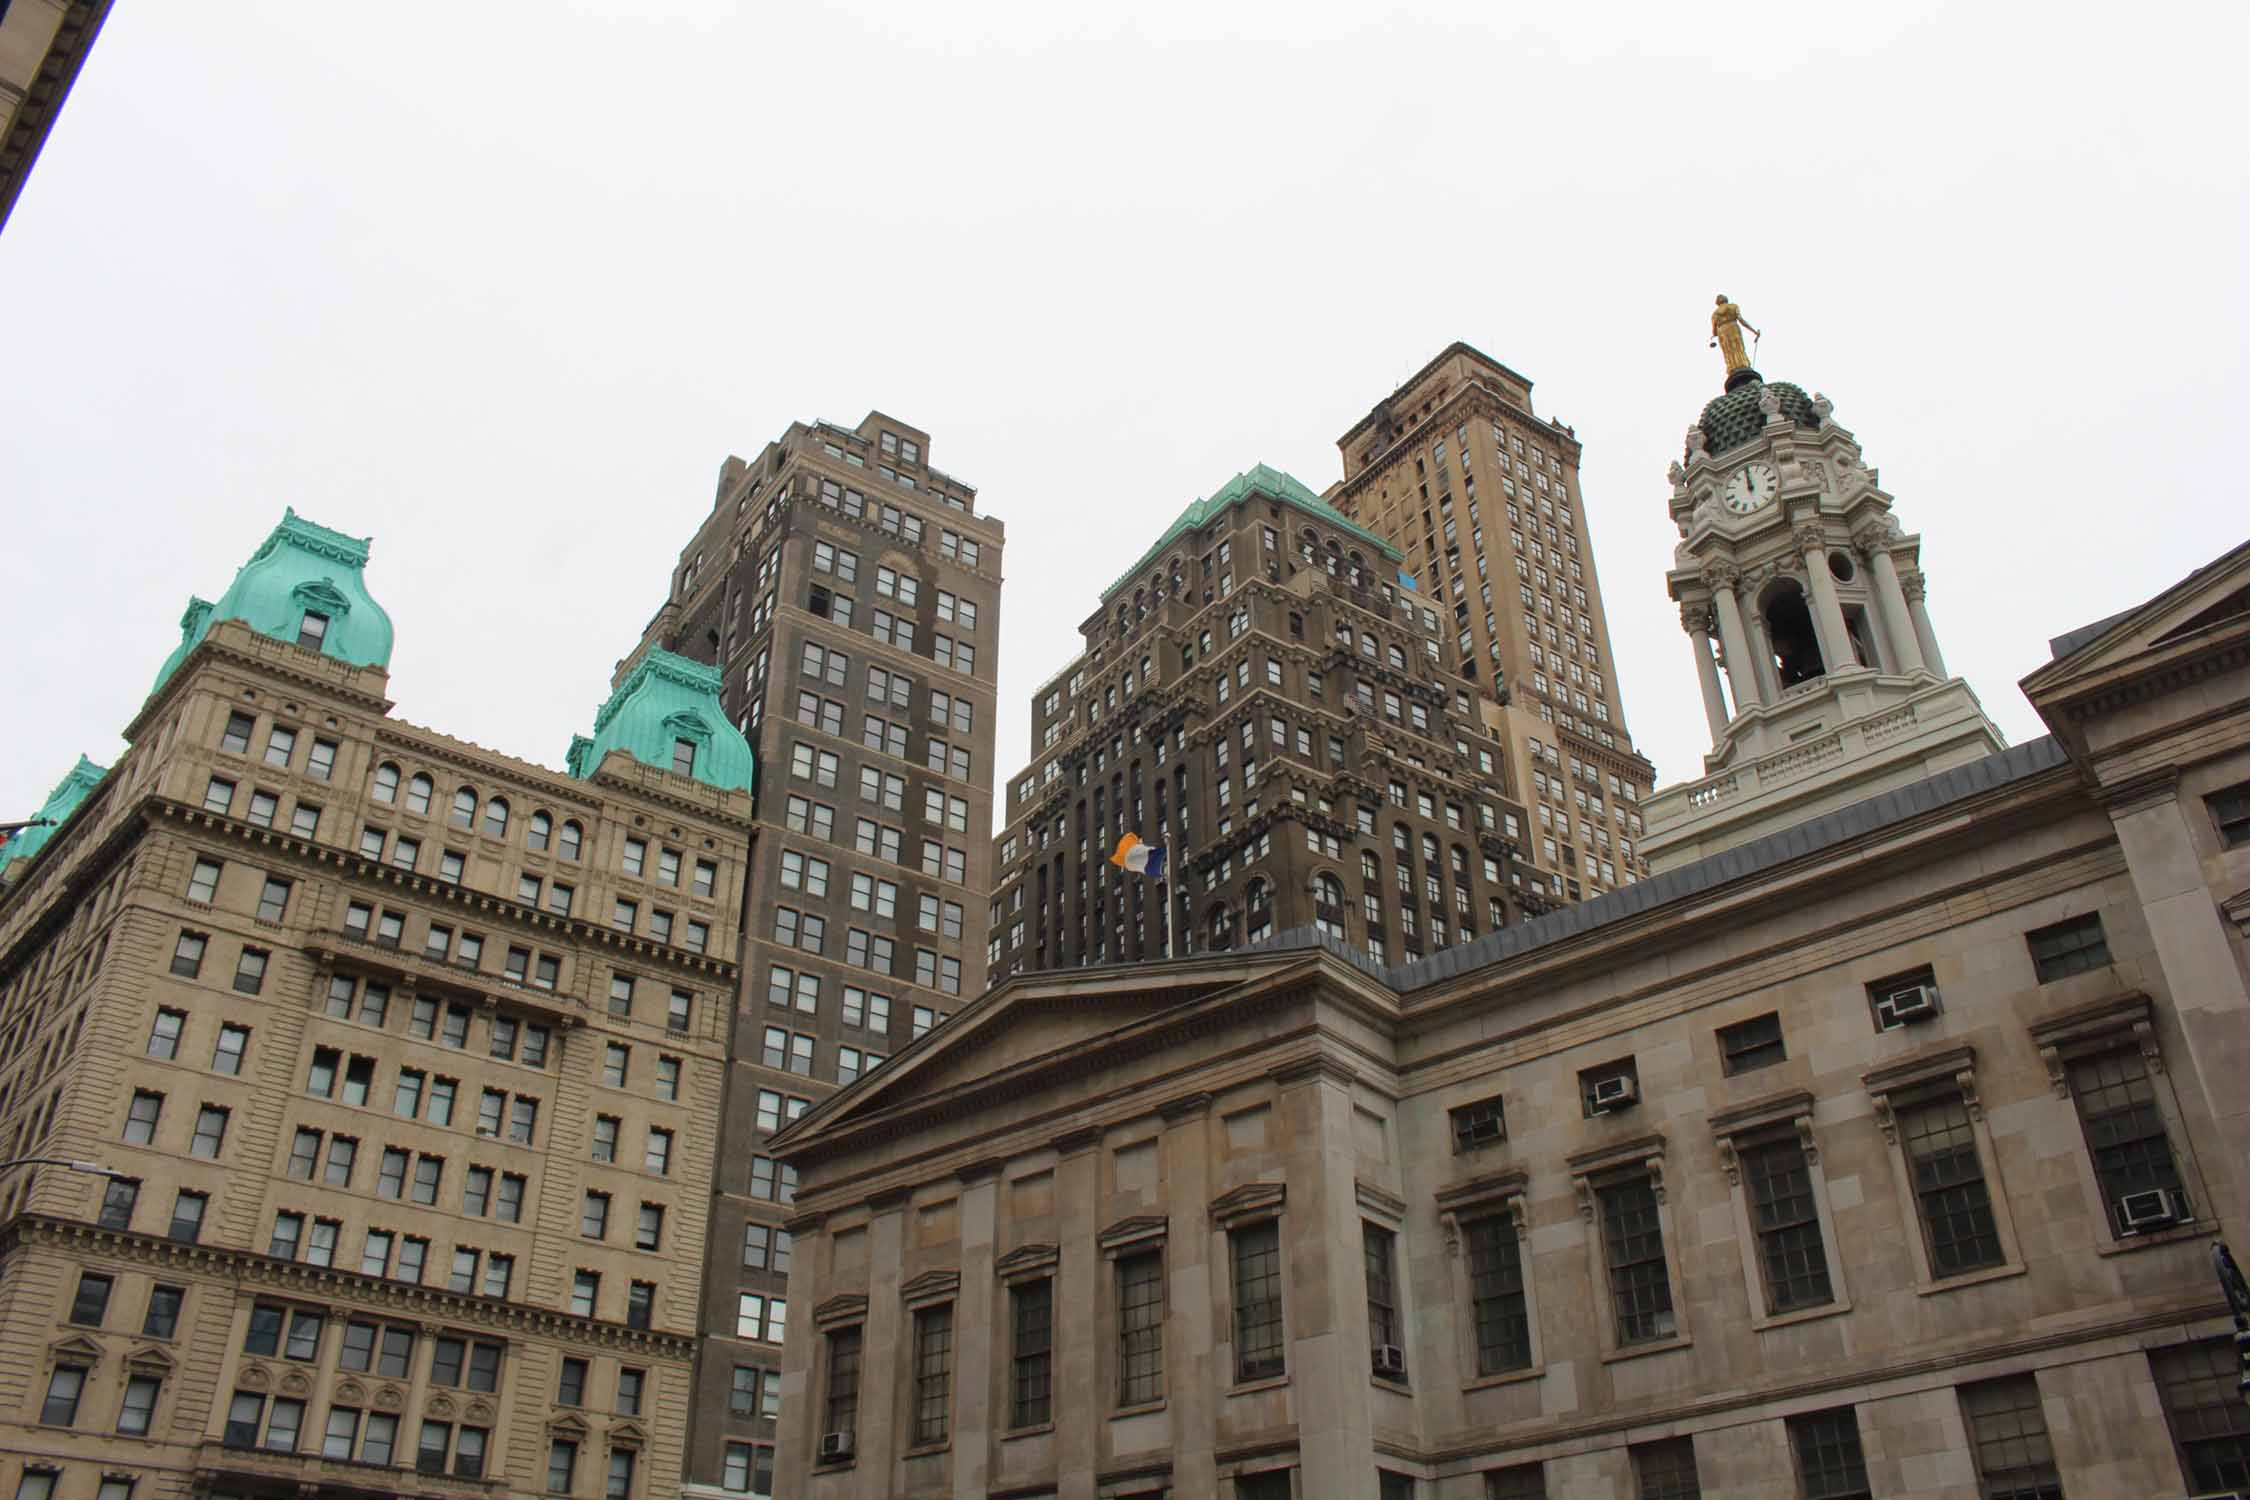 New York, lower Manhattan, tours anciennes typiques